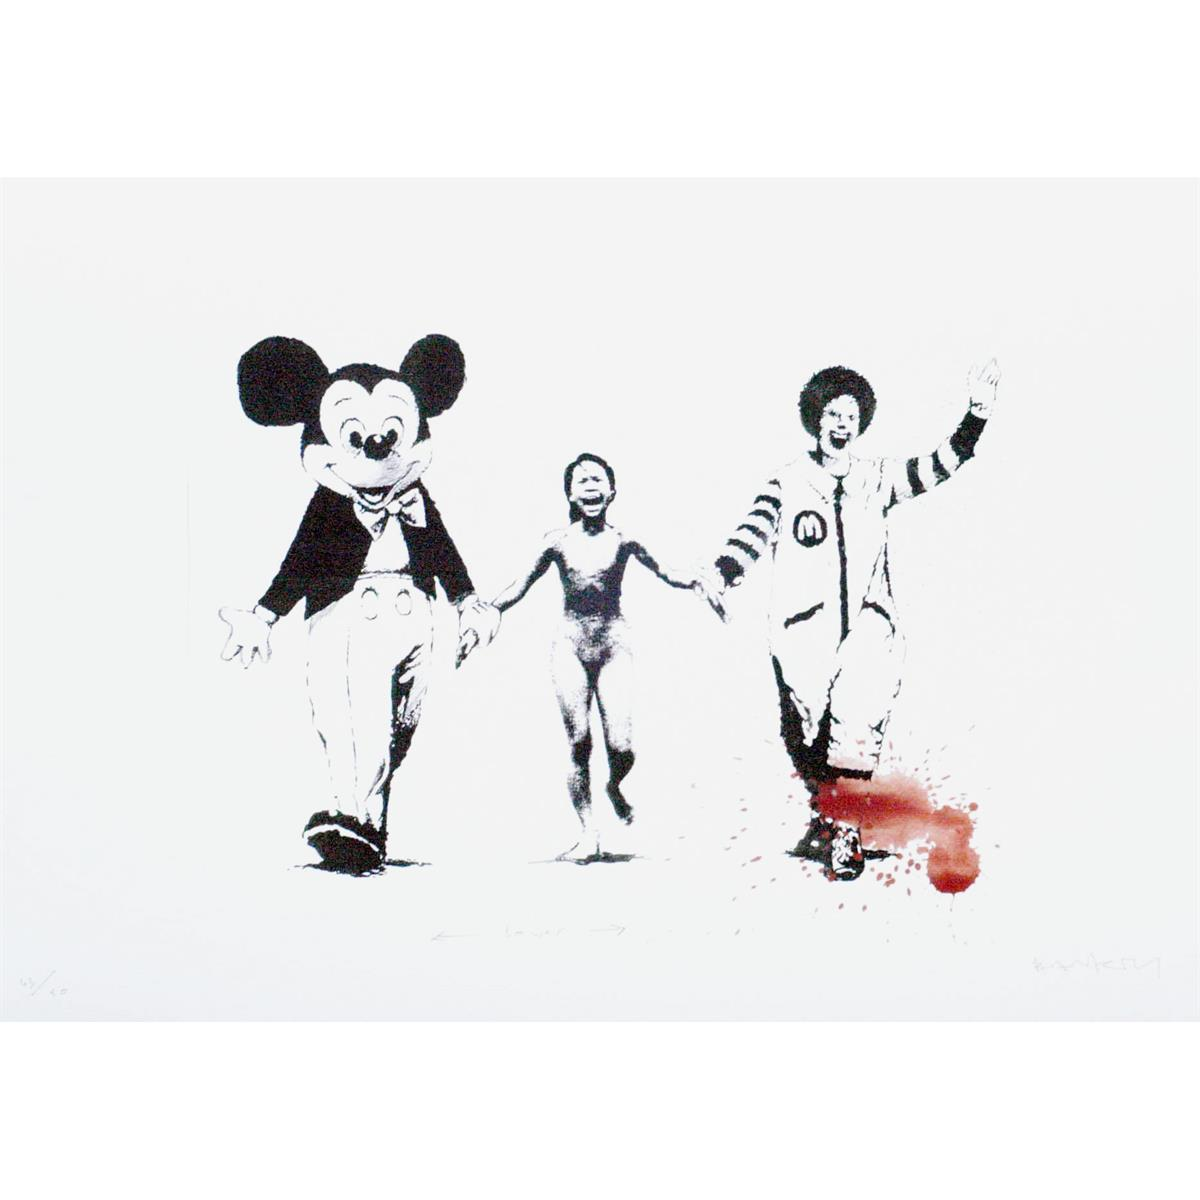 Can't Beat The Feeling (Serpentine Edition) by Banksy